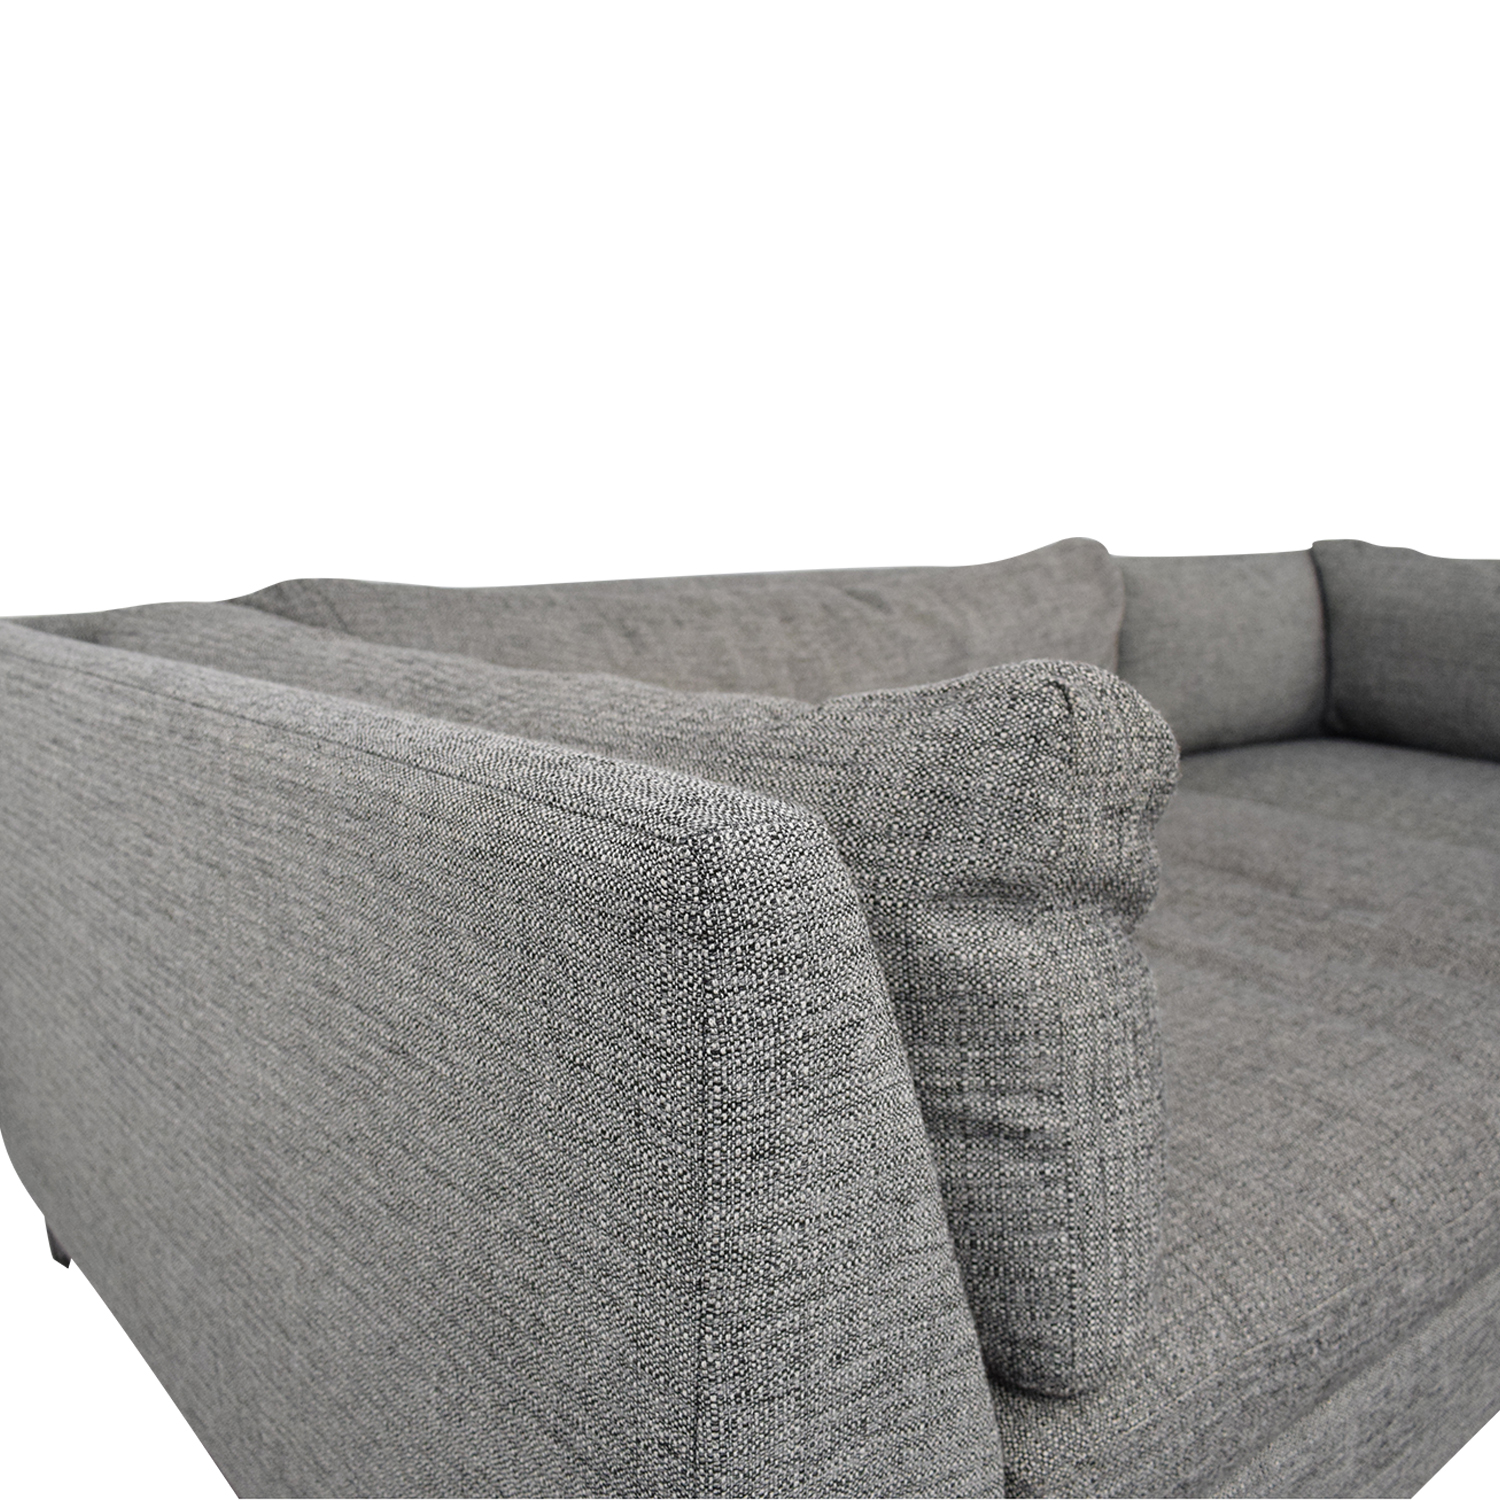 CB2 CB2 Two Piece Sectional Sofa with Chaise ct